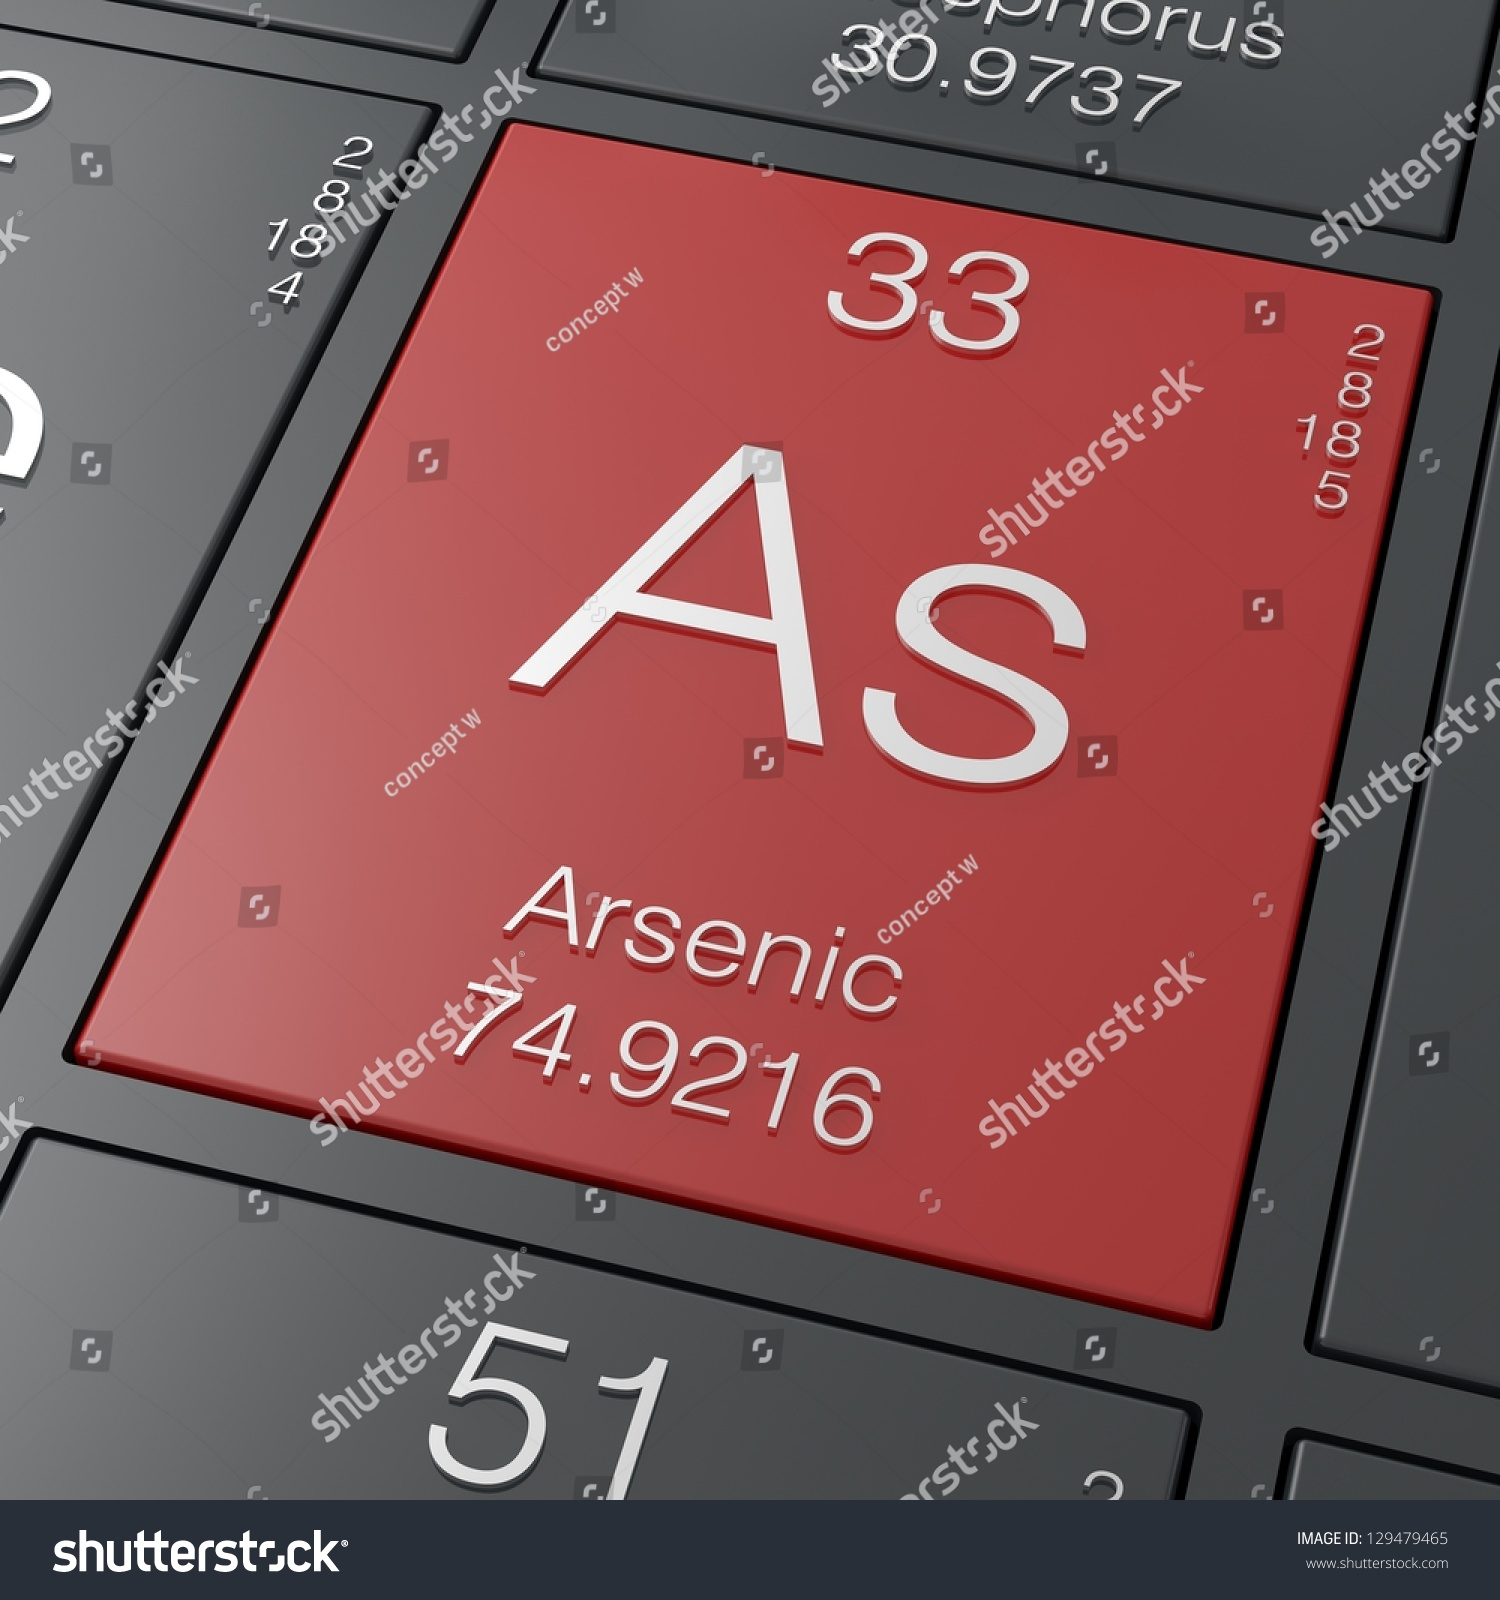 Arsenic element periodic table stock illustration 129479465 arsenic element from periodic table biocorpaavc Image collections